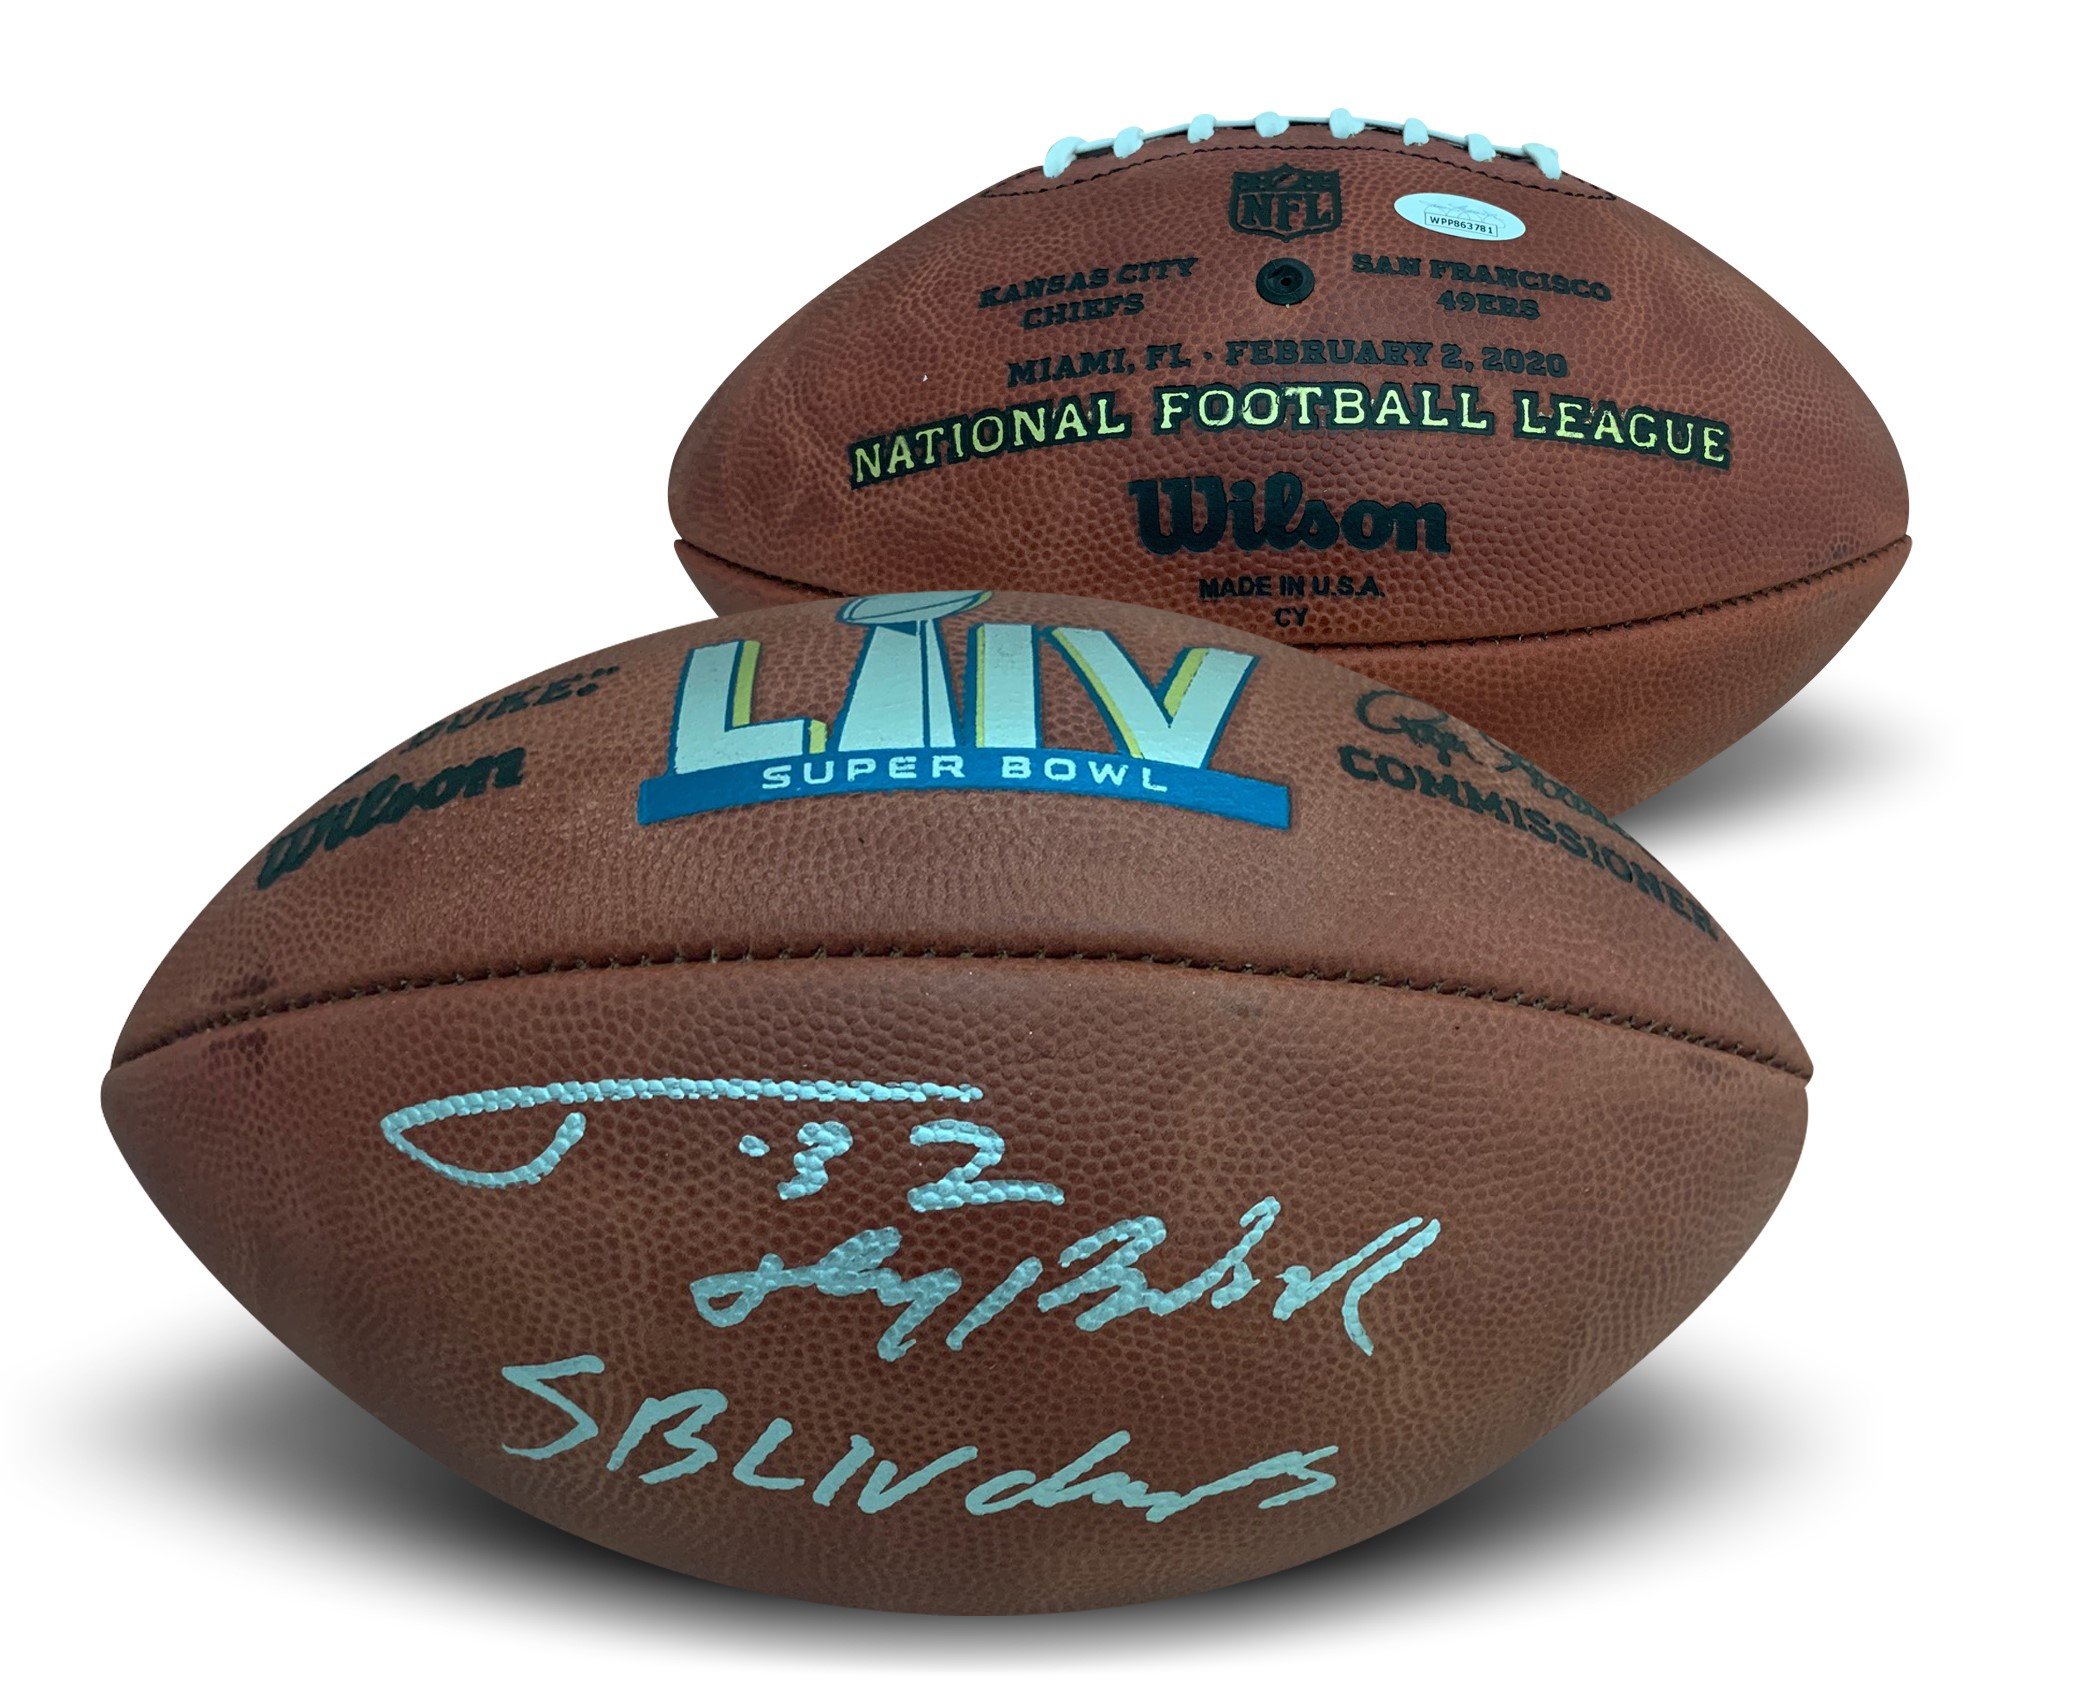 "Tyrann Mathieu Autographed Kansas City Chiefs Super Bowl LIV 54 Signed Authentic Football Honey Badger JSA COA Whoa!!! What is this???  Super Bowl 54 Champion and leader of the Kansas City Chefs defense Tyrann Mathieu has autographed this officially licensed Super Bowl 54 football (same ones used in the game, not game used) and written SB LIV CHAMPS and his nickname HONEY BADGER. Autograph and inscriptions are authenticated by James Spence Authentication (JSA). Comes with JSA certificate of authenticity and matching sticker verified on their website. JSA is one of the world's leading authenticator of autographs. It is a ""witness"" COA, meaning a representative from JSA was present for the signing with him and witnessed him signing your item. Signed on 5/28/20 in Kansas City, MO."